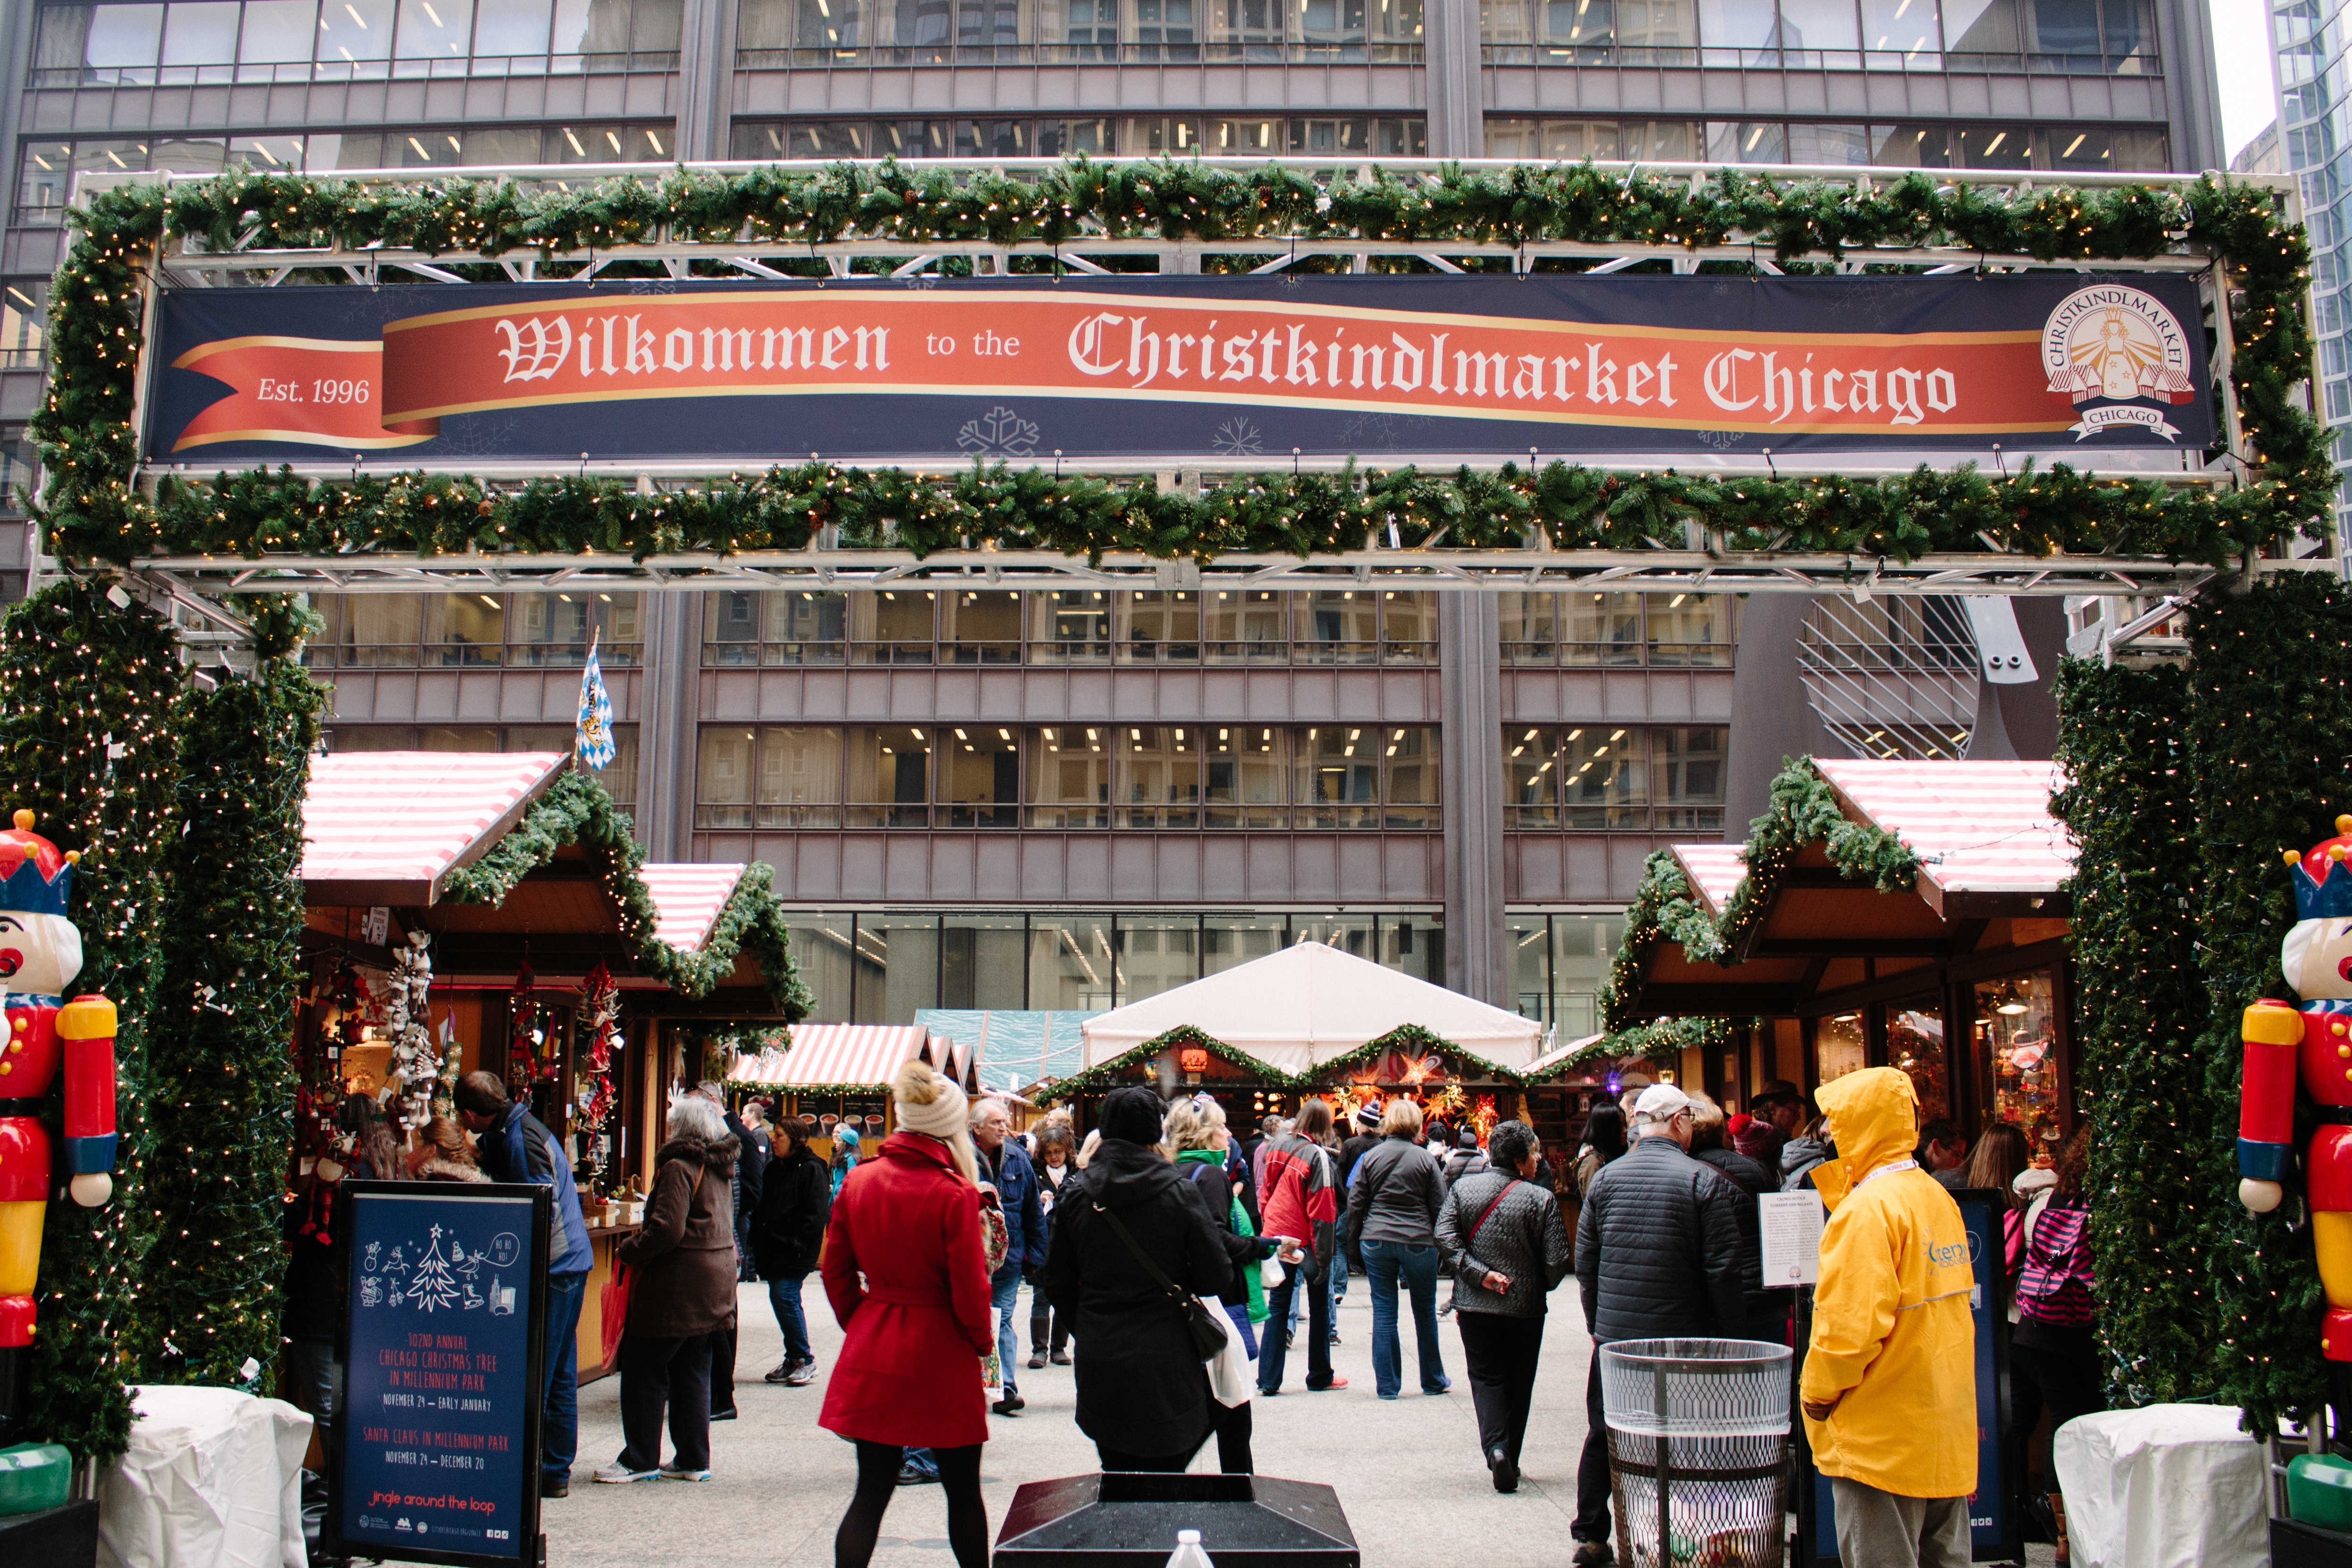 christkindlmarket market photo chelsias christkindlmarket chicago - Chicago Christmas Market